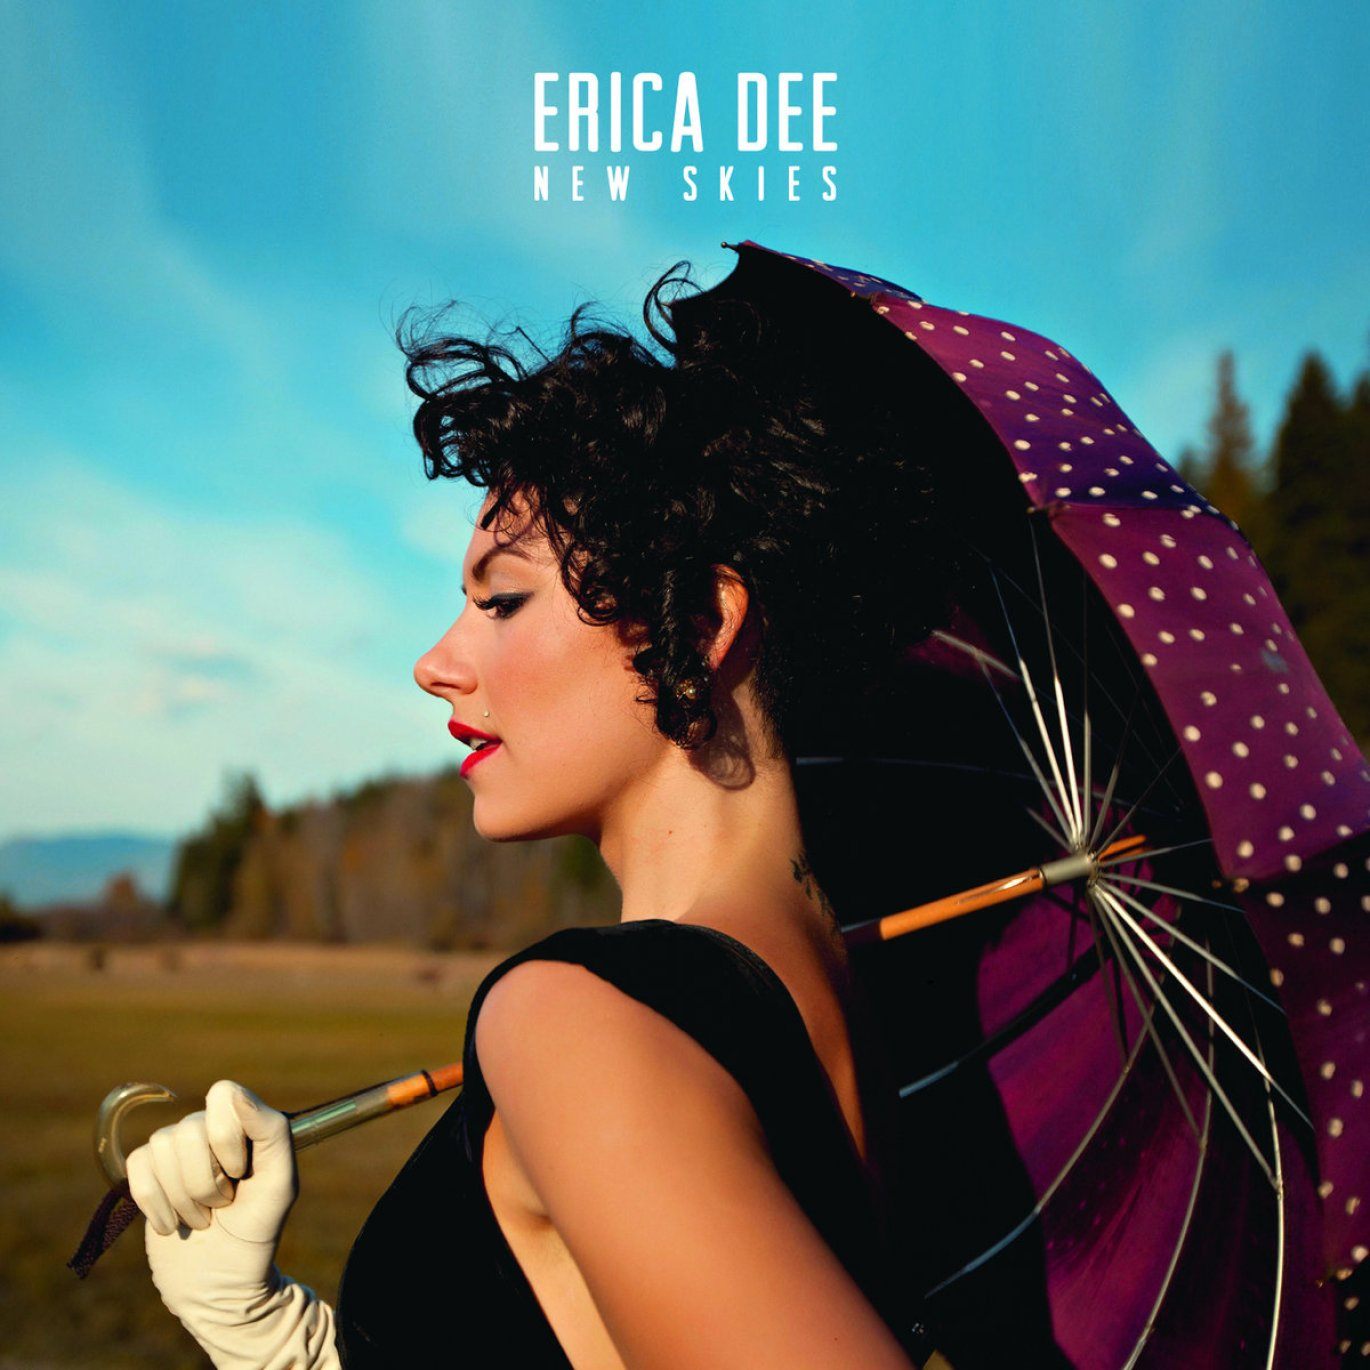 erica dee new skies